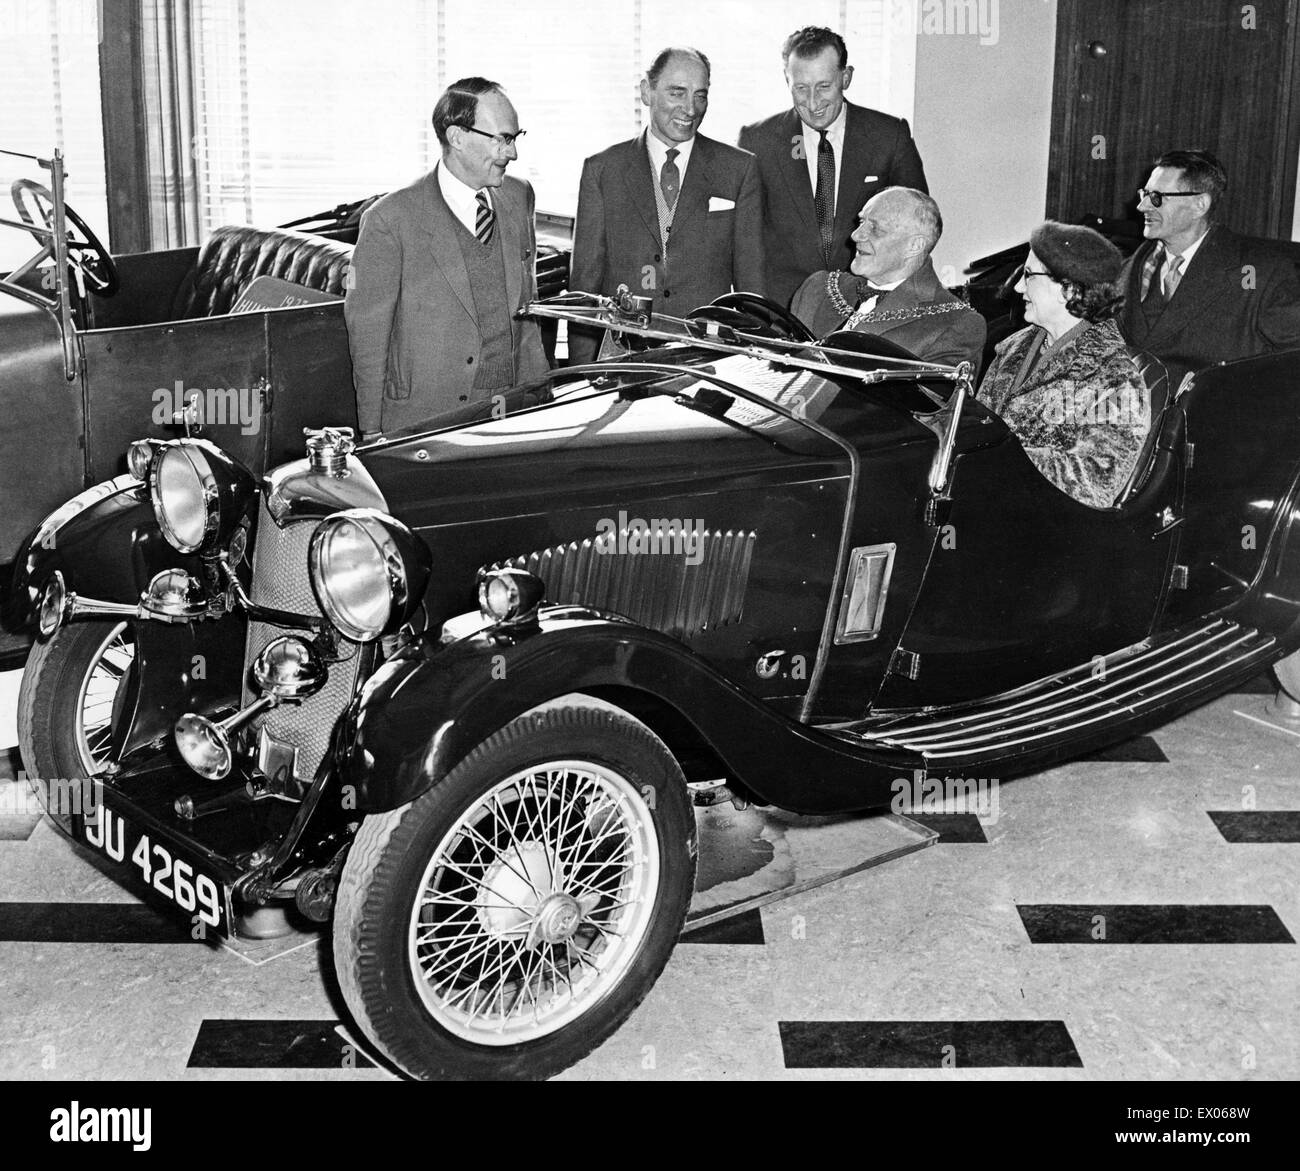 A 1933 Riley car presentation to the Herbert Art Gallery and Museum by Mr C Adams and Mr A Walters, partners in - Stock Image